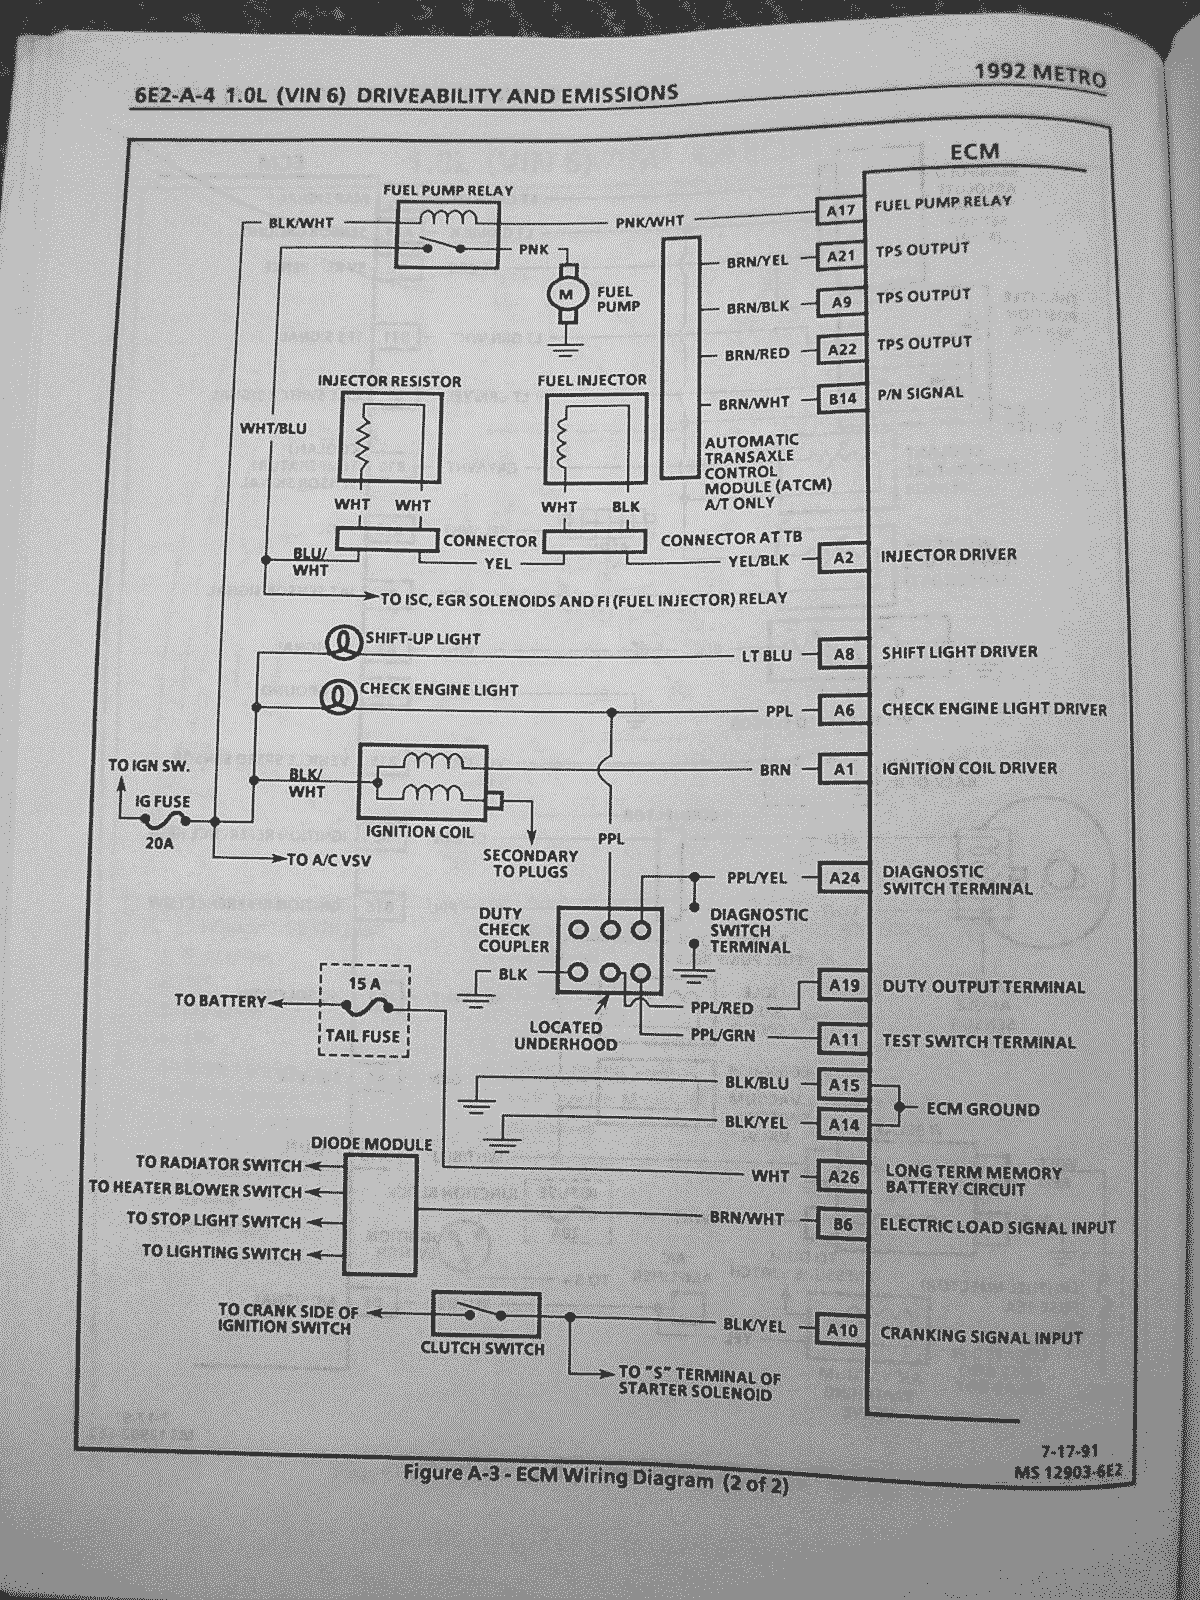 1995 Geo Prizm Fuse Box - Saturn Car Stereo Wiring Diagram for Wiring  Diagram SchematicsWiring Diagram Schematics